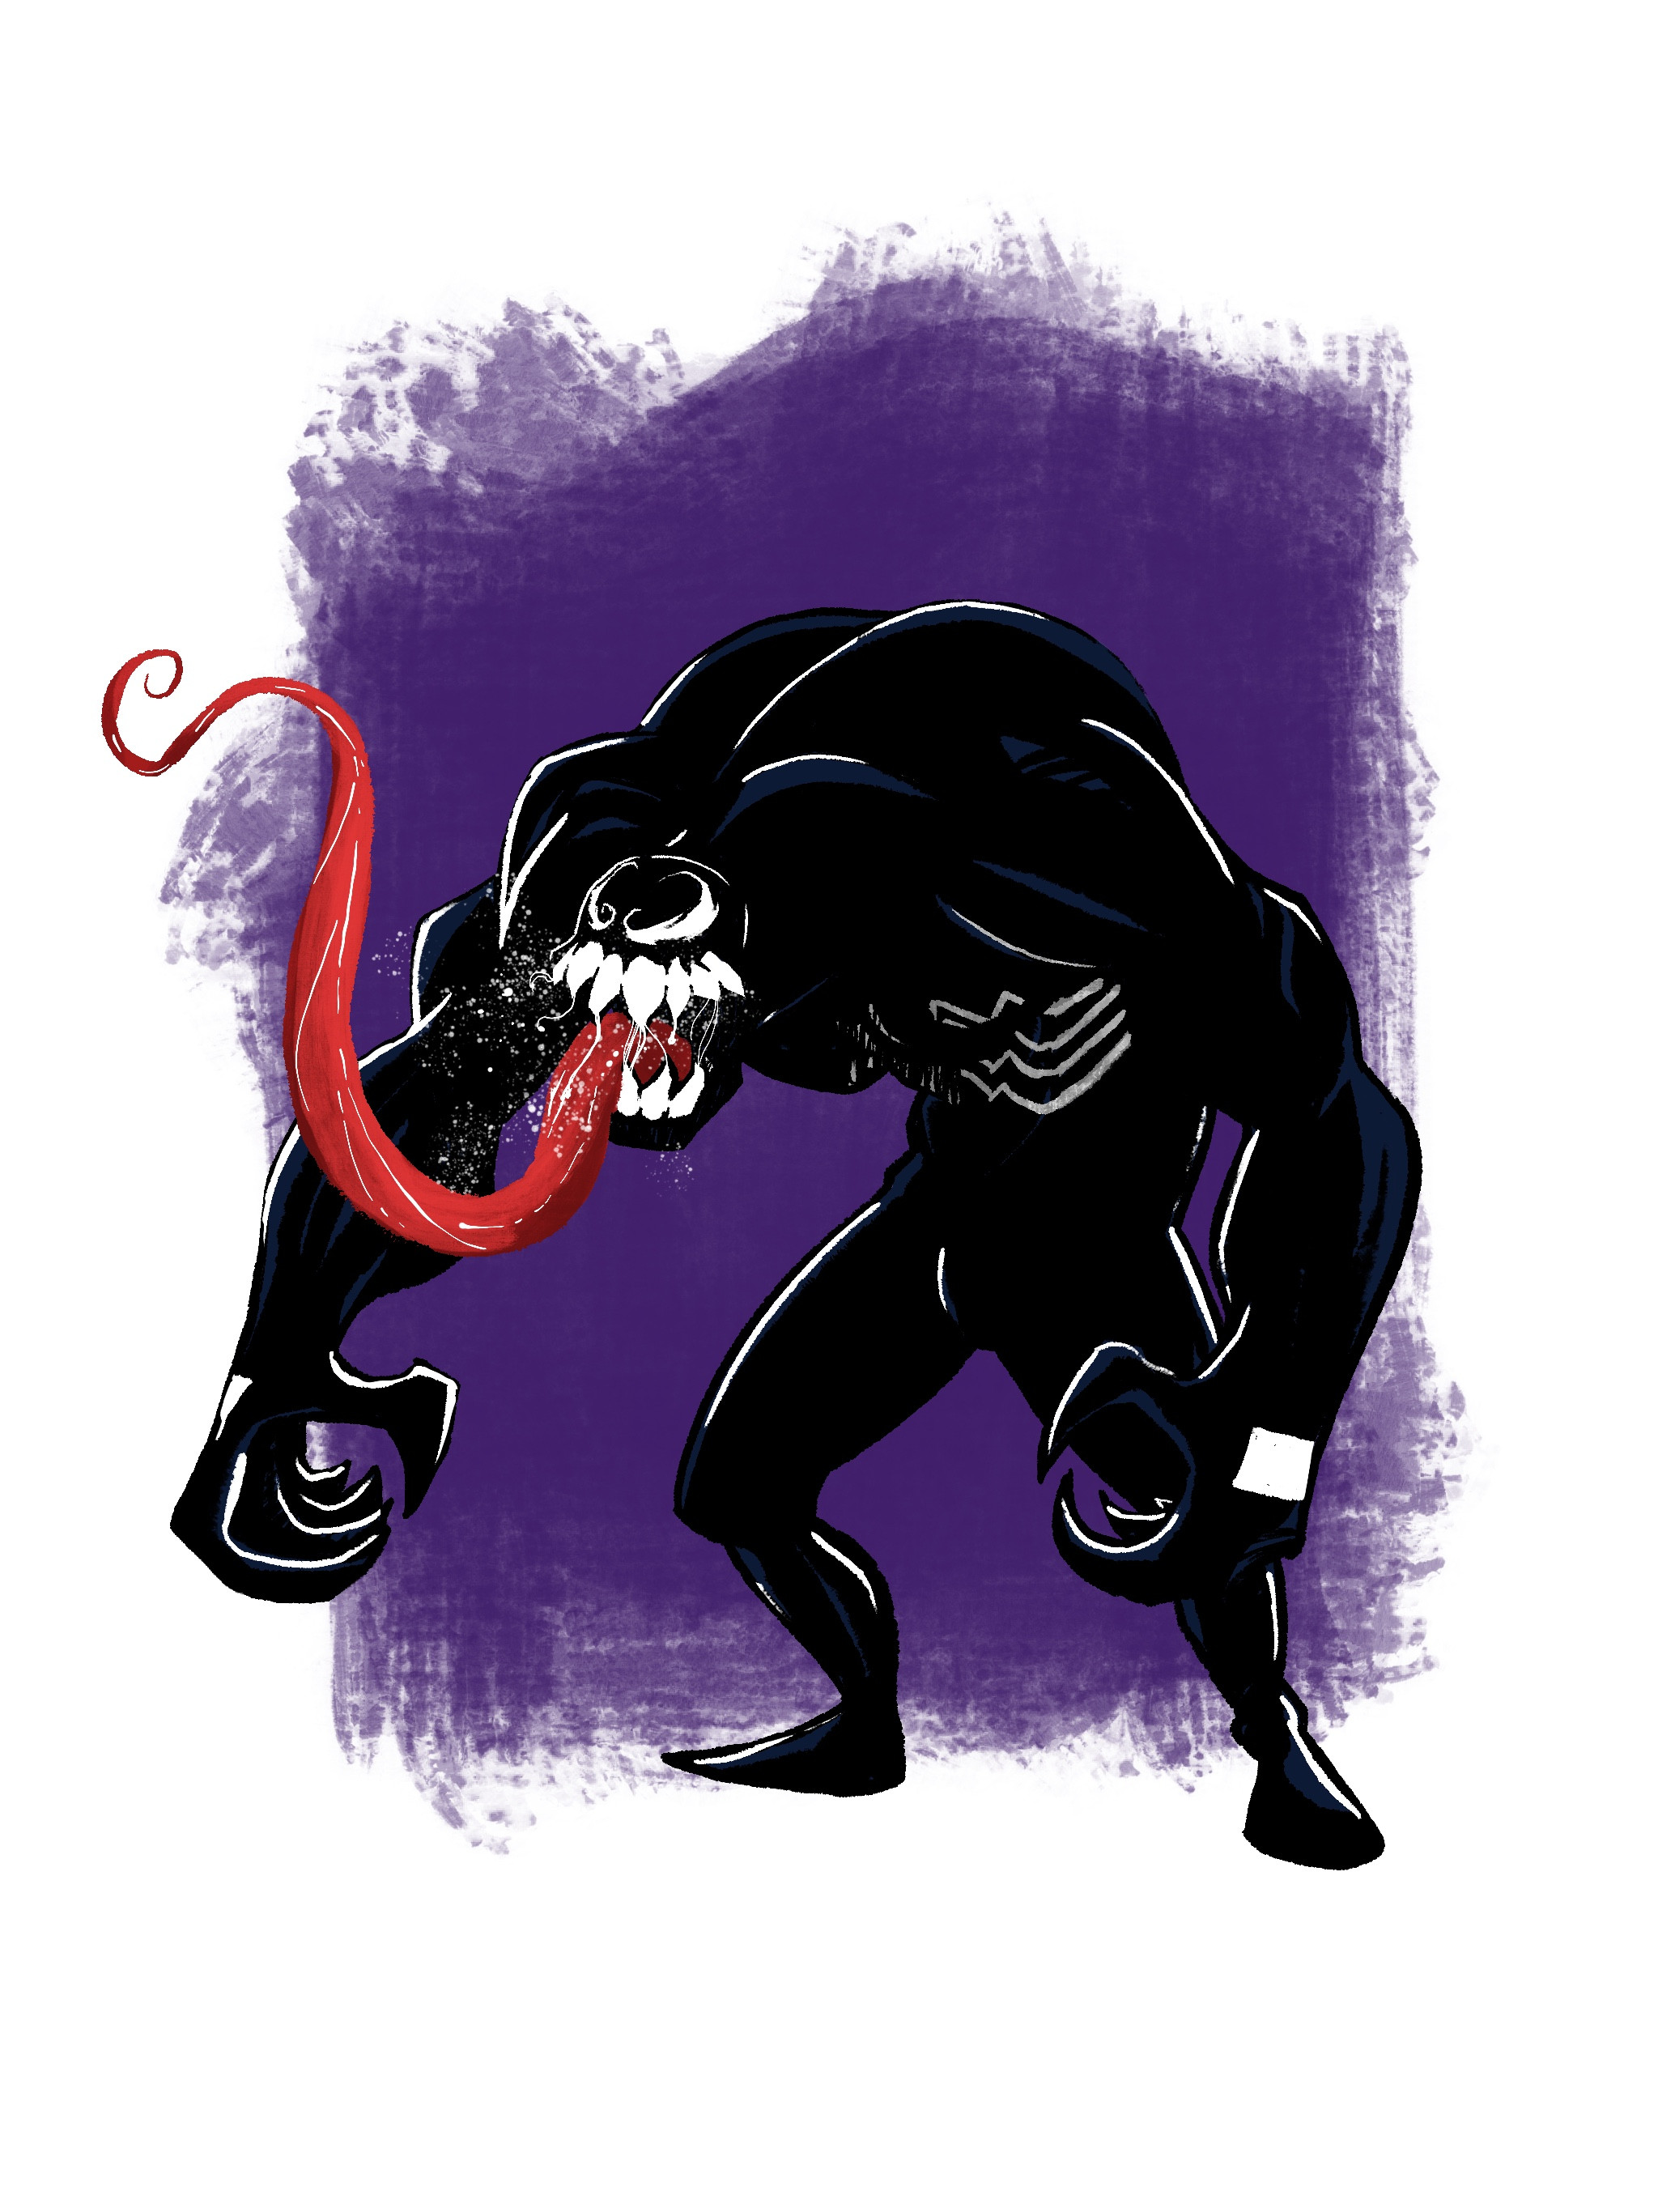 Venom - Digital in Procreate